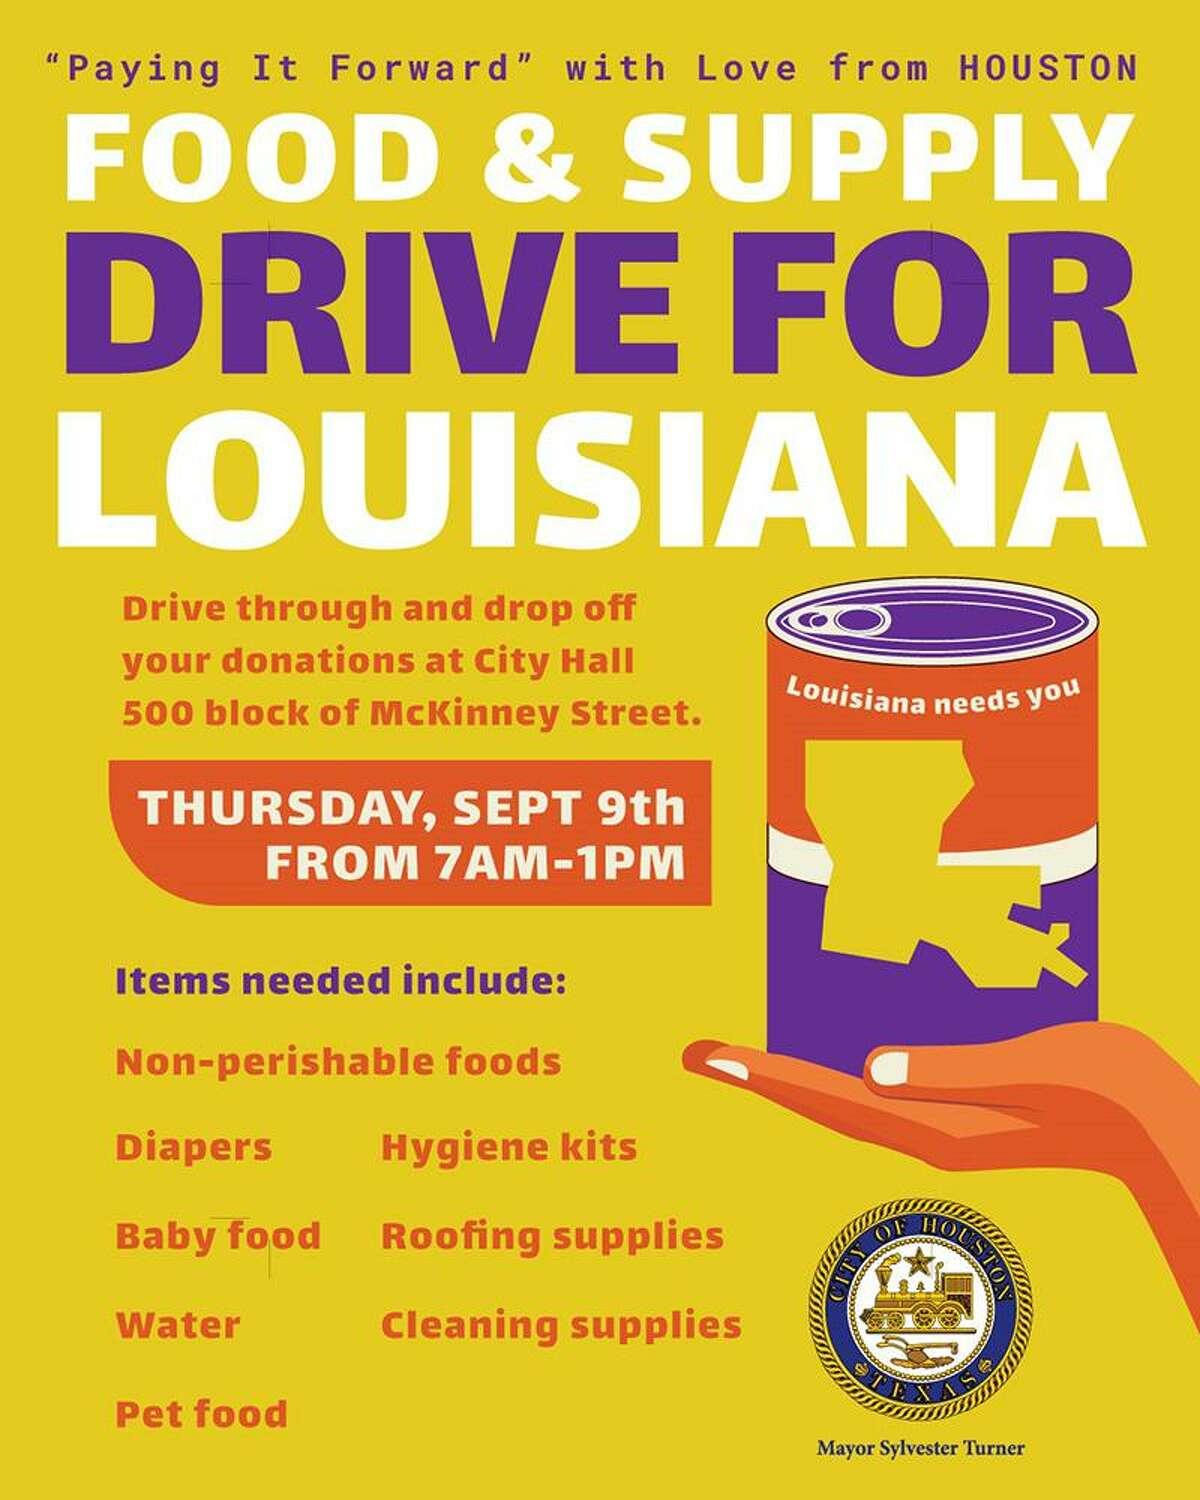 """The City of Houston is hosting a relief supply drive """"Paying it Forward"""" with Love from Houston to help our neighbors in Louisiana. Residents are asked to donatenonperishable food, diapers, hygiene kits, baby food, roofing supplies, cleaning supplies, water, and pet food to help those recovering from Hurricane Ida."""